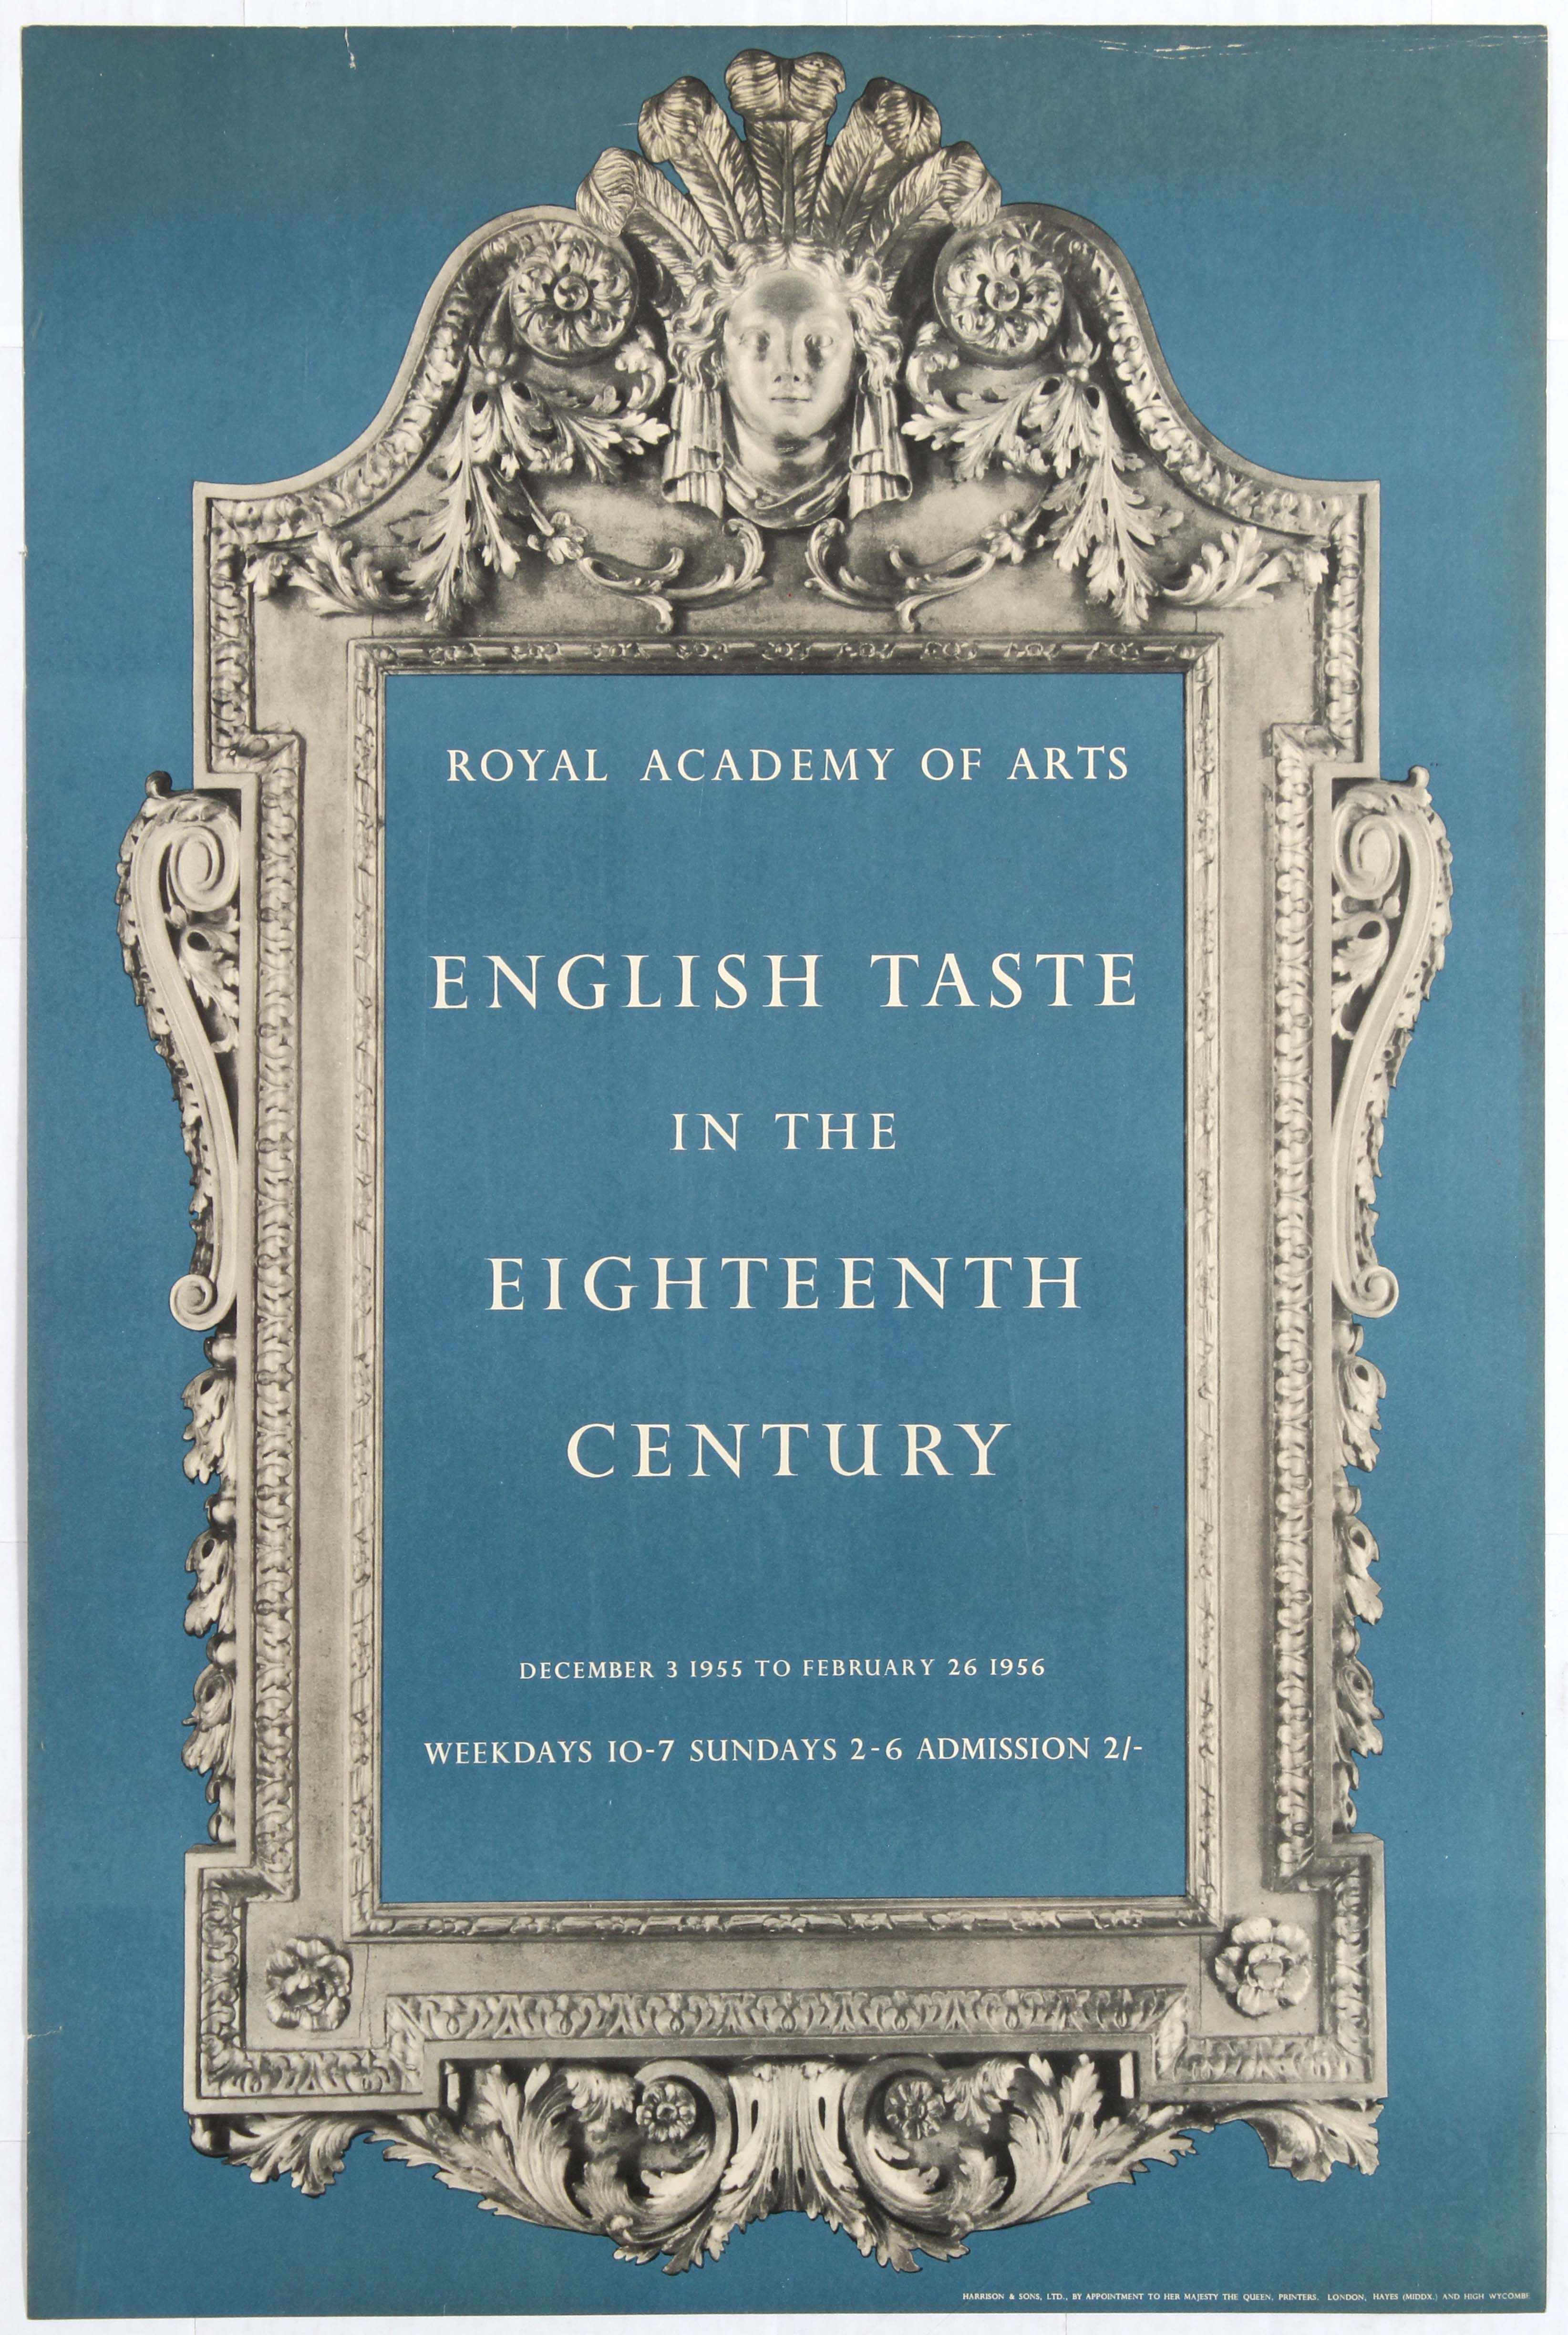 Lot 1510 - Advertising Poster Royal Academy of Arts English Taste in the Eighteenth Century.